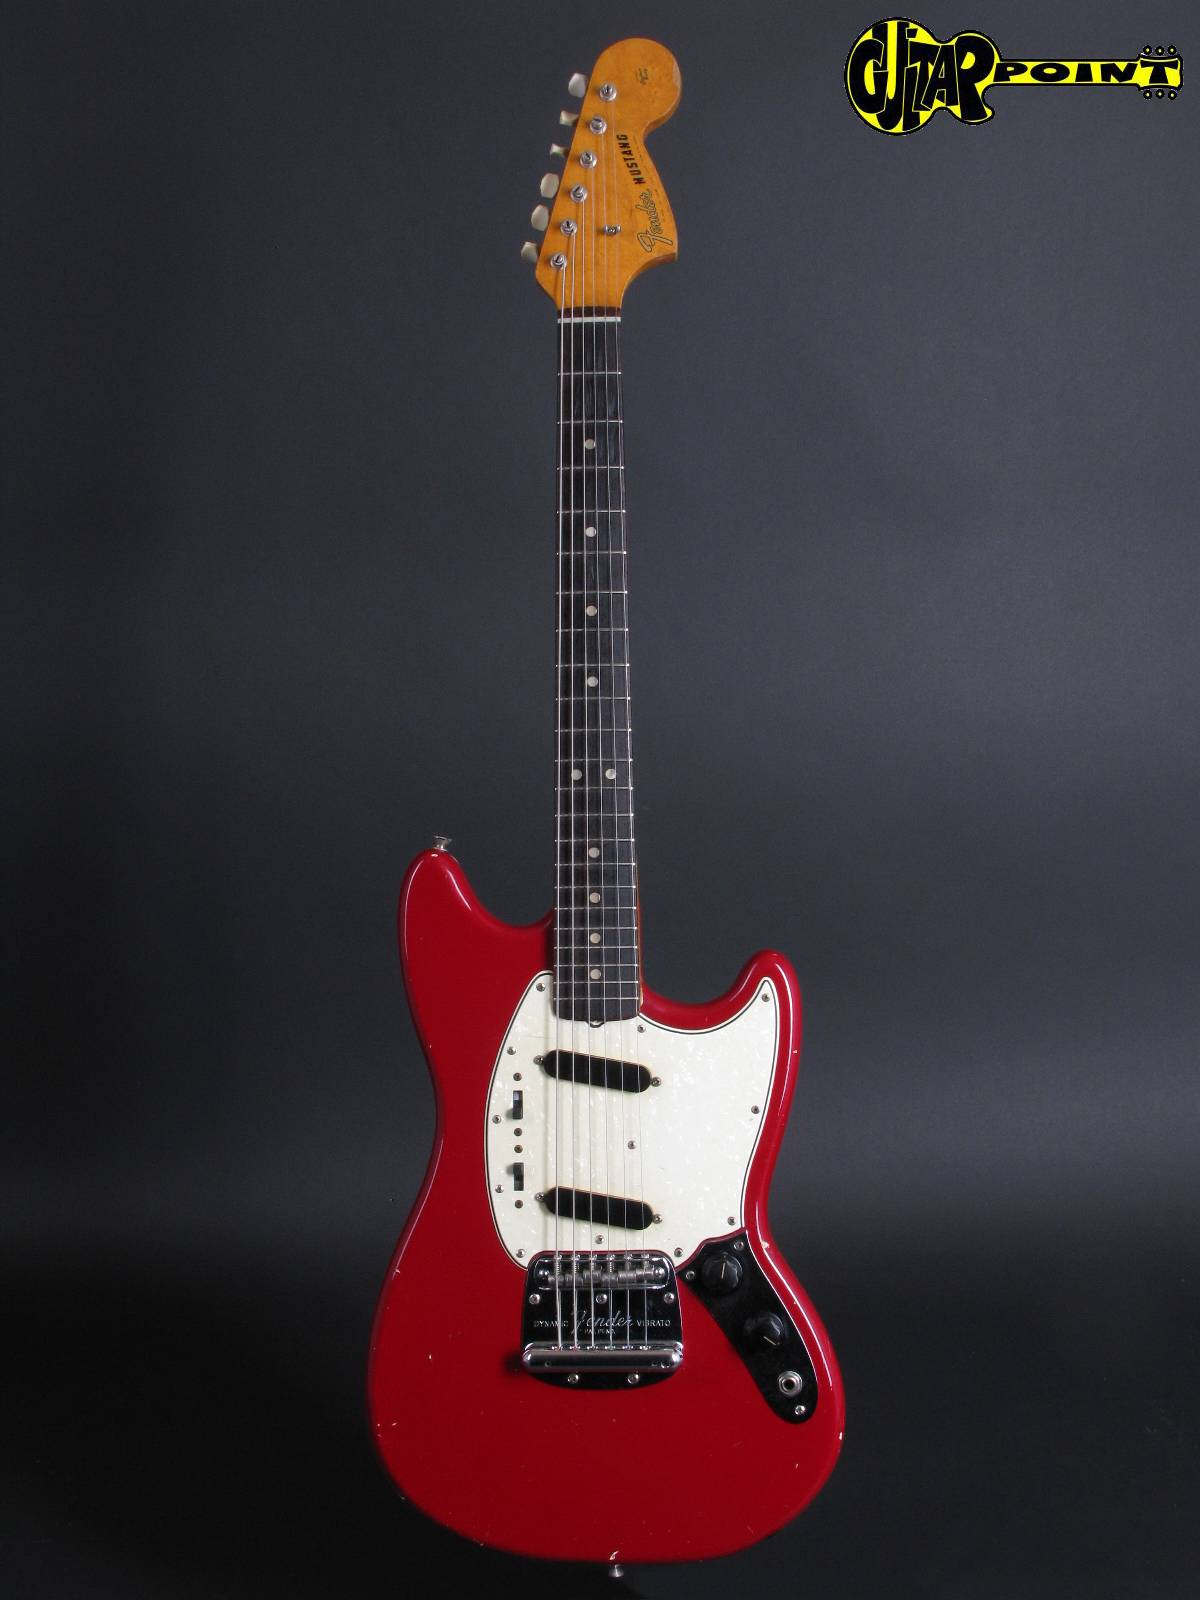 Fender guitars images Fender Mustang HD wallpaper and background photos